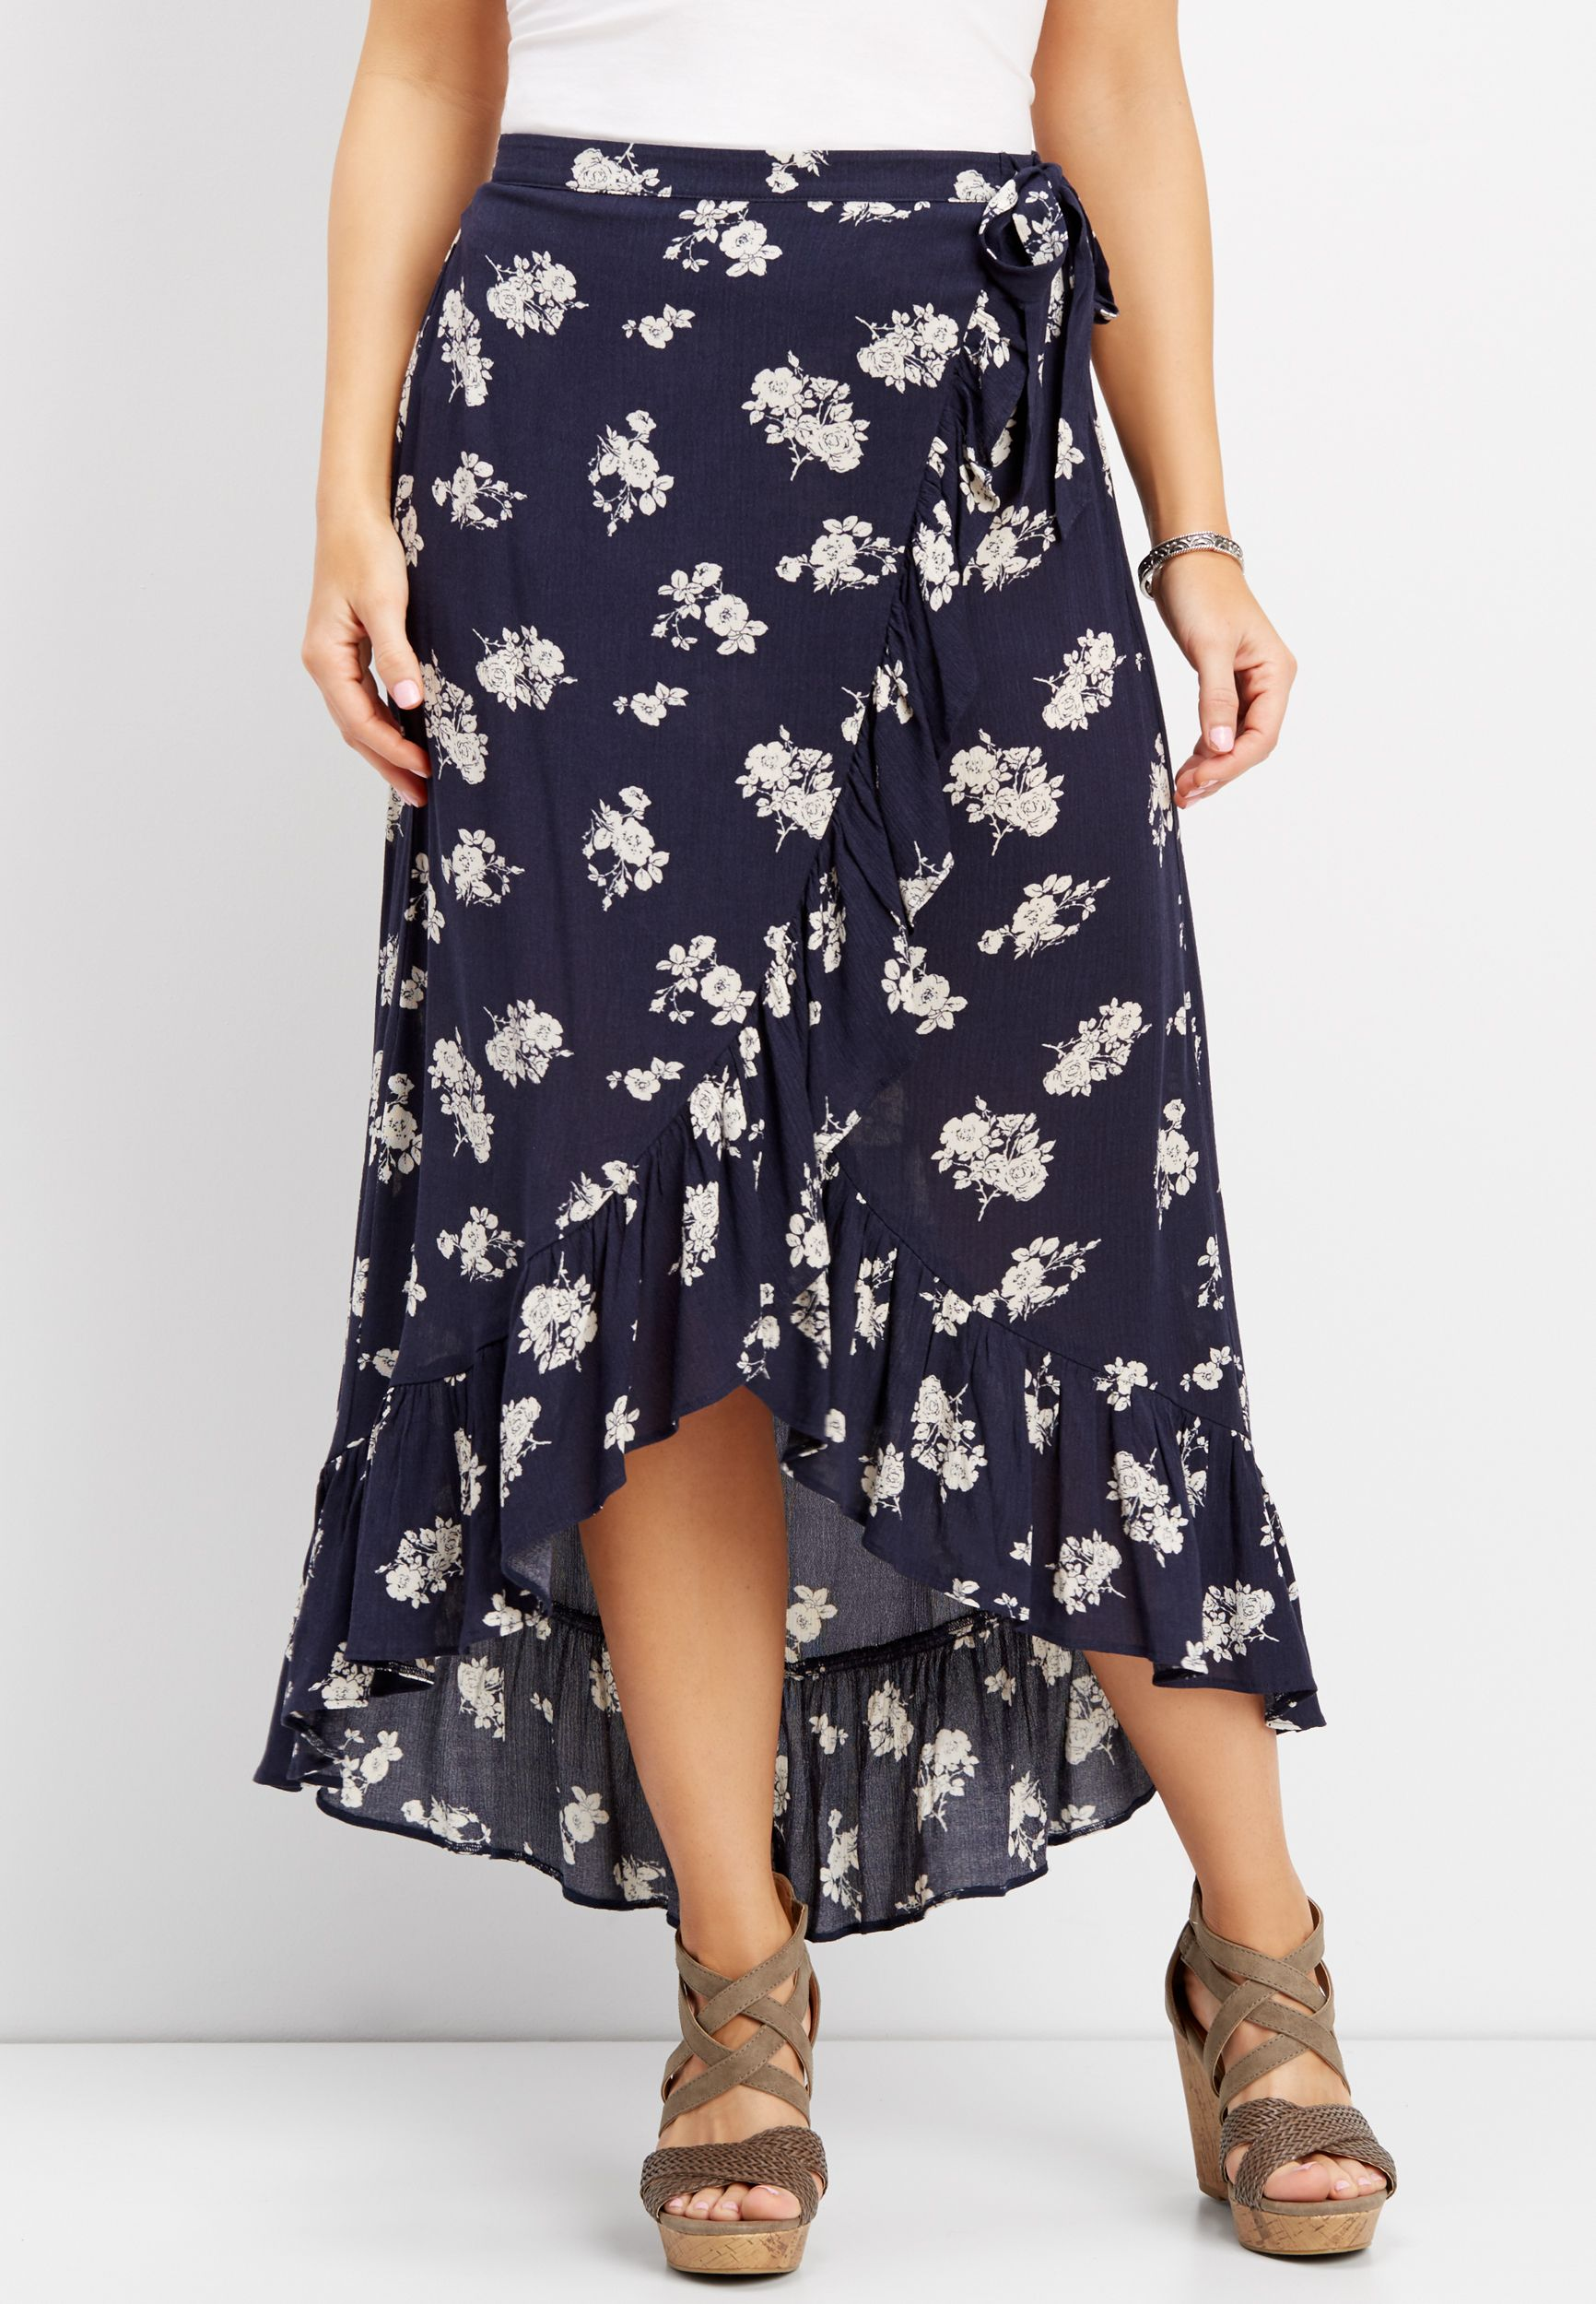 Cheap Price Maurices Floral Skirt Women's Clothing Skirts